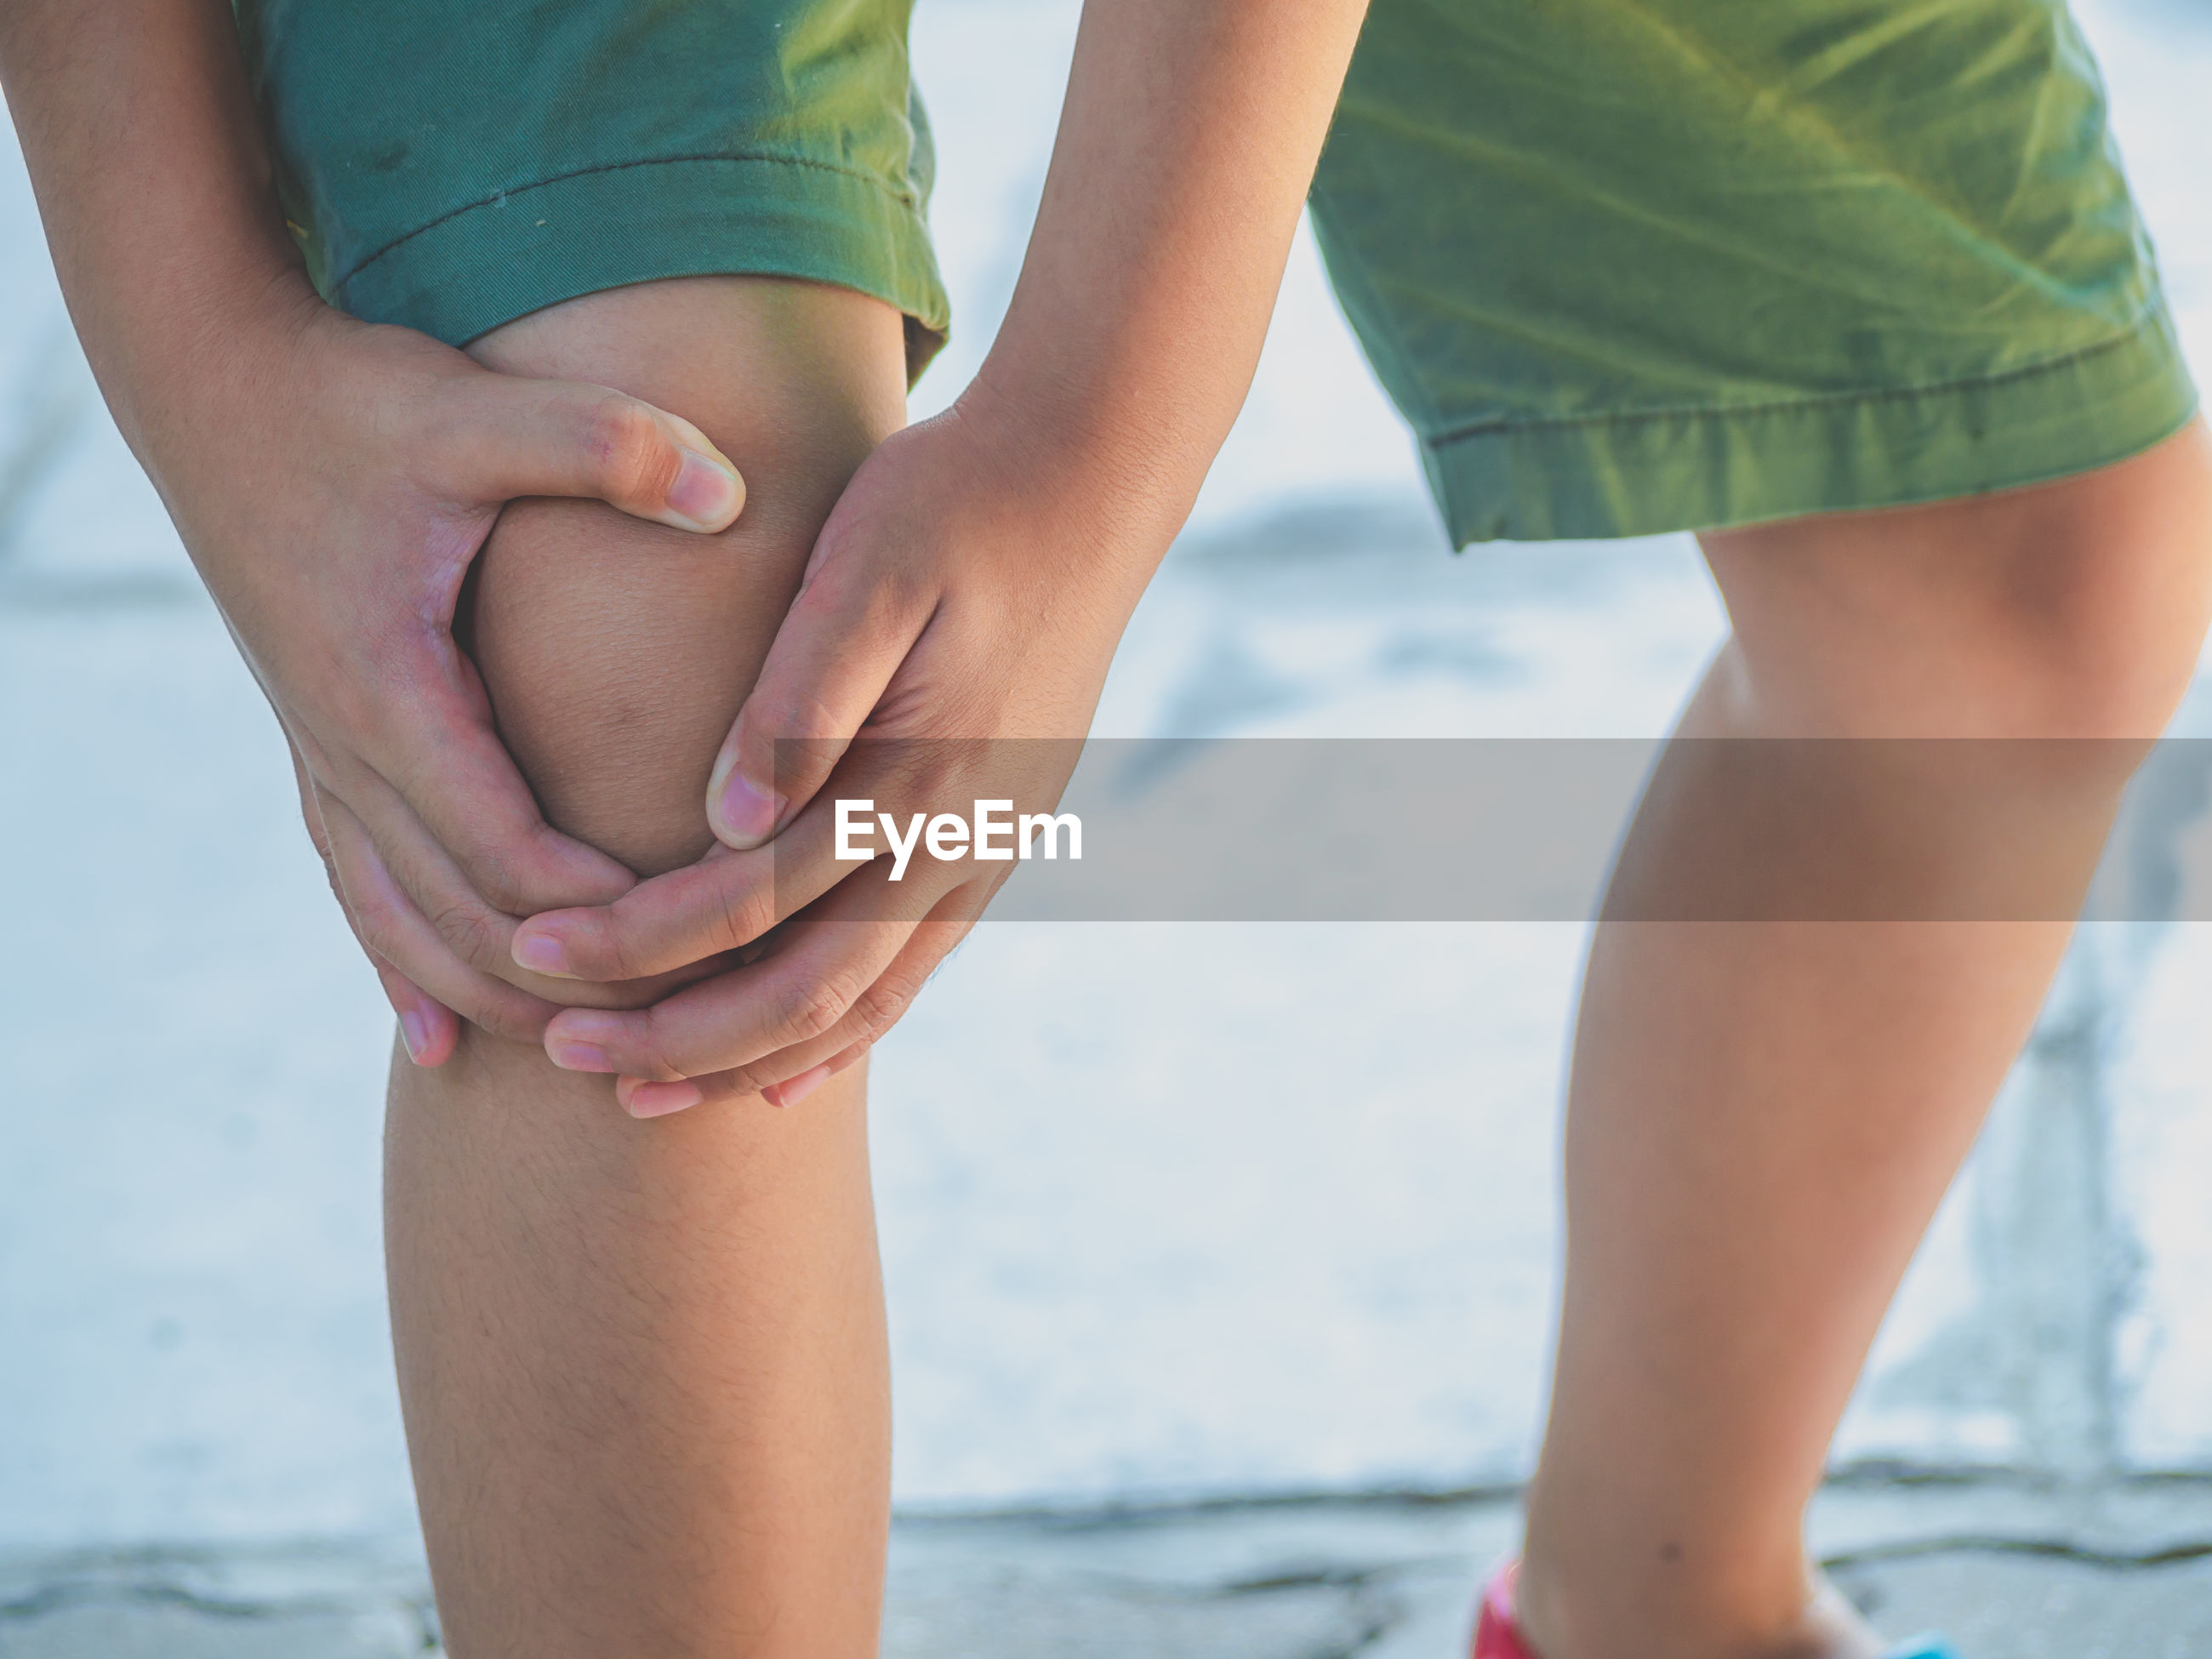 Midsection of boy holding knee